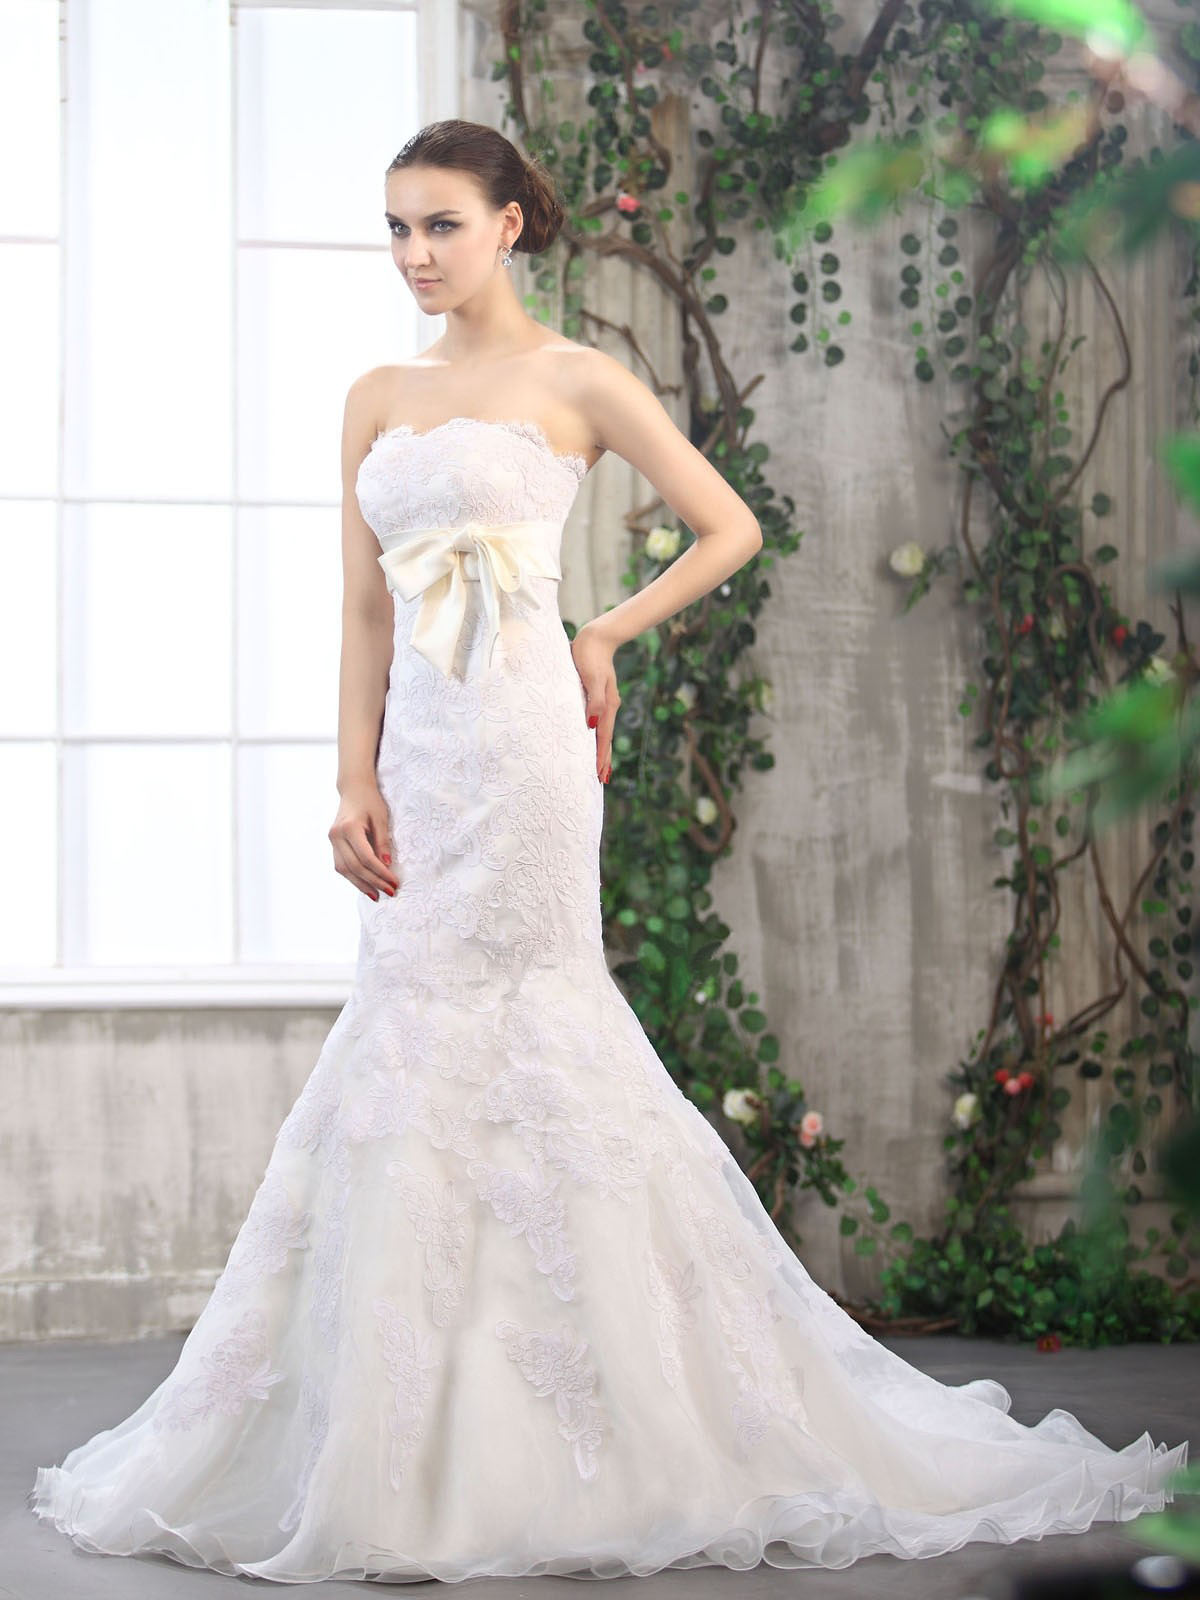 Wedding Dresses 1 Try On As Many Styles You Want It Would Be A Lot Better If Could Determine The Style And Cut That Is Perfect For